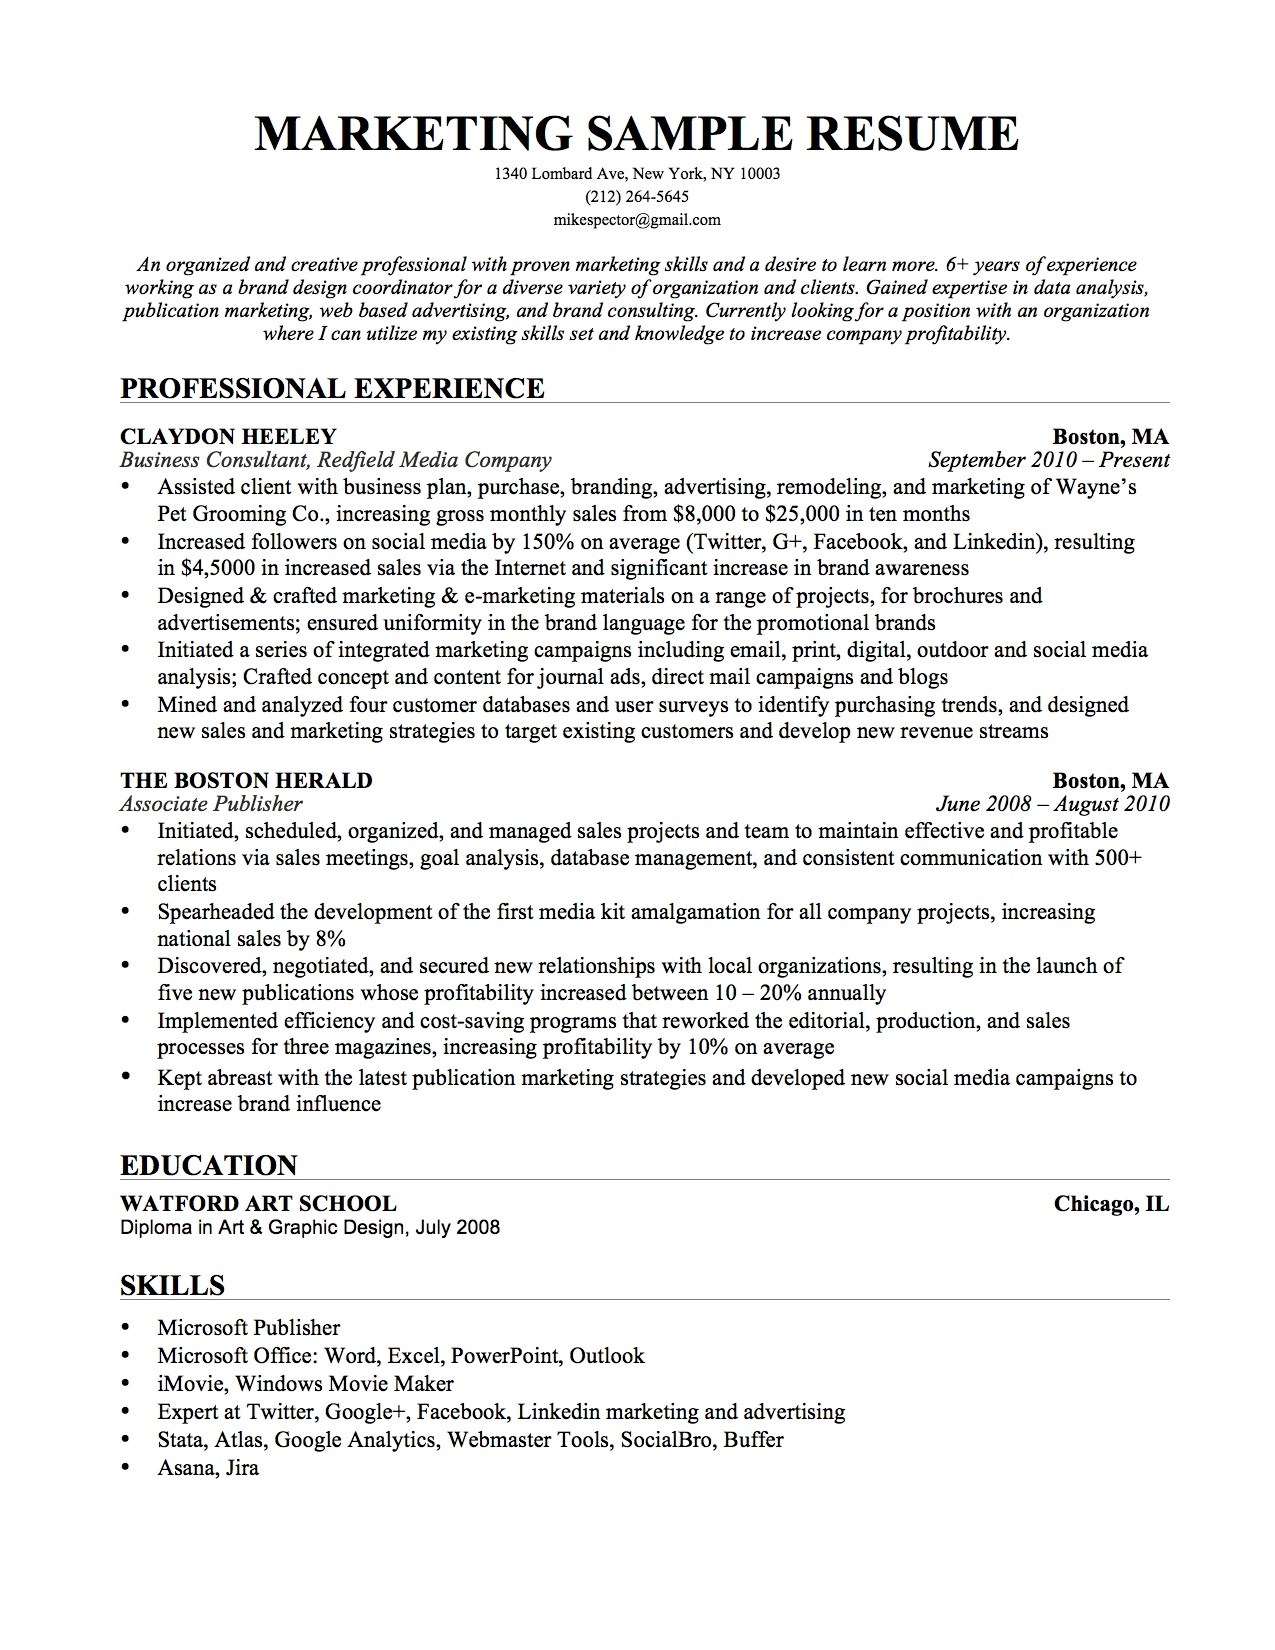 financial resume summary examples sample customer service resume financial resume summary examples finance resume examples samples sample marketing resume examples